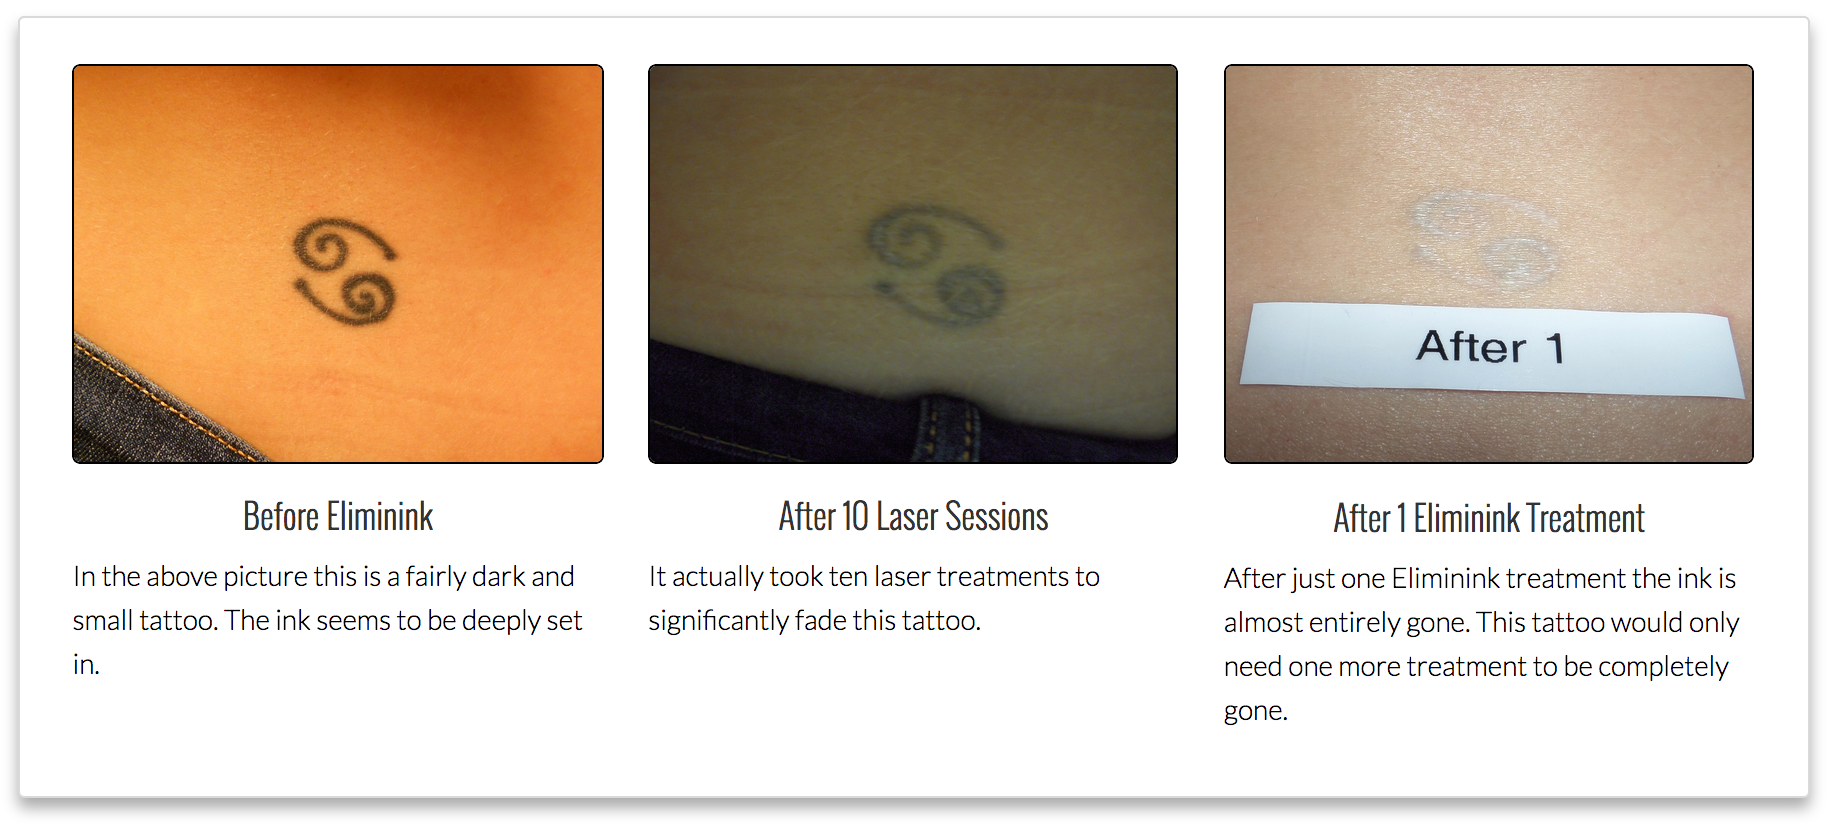 Eliminink Before and After Tattoos, Tattoo removal cost